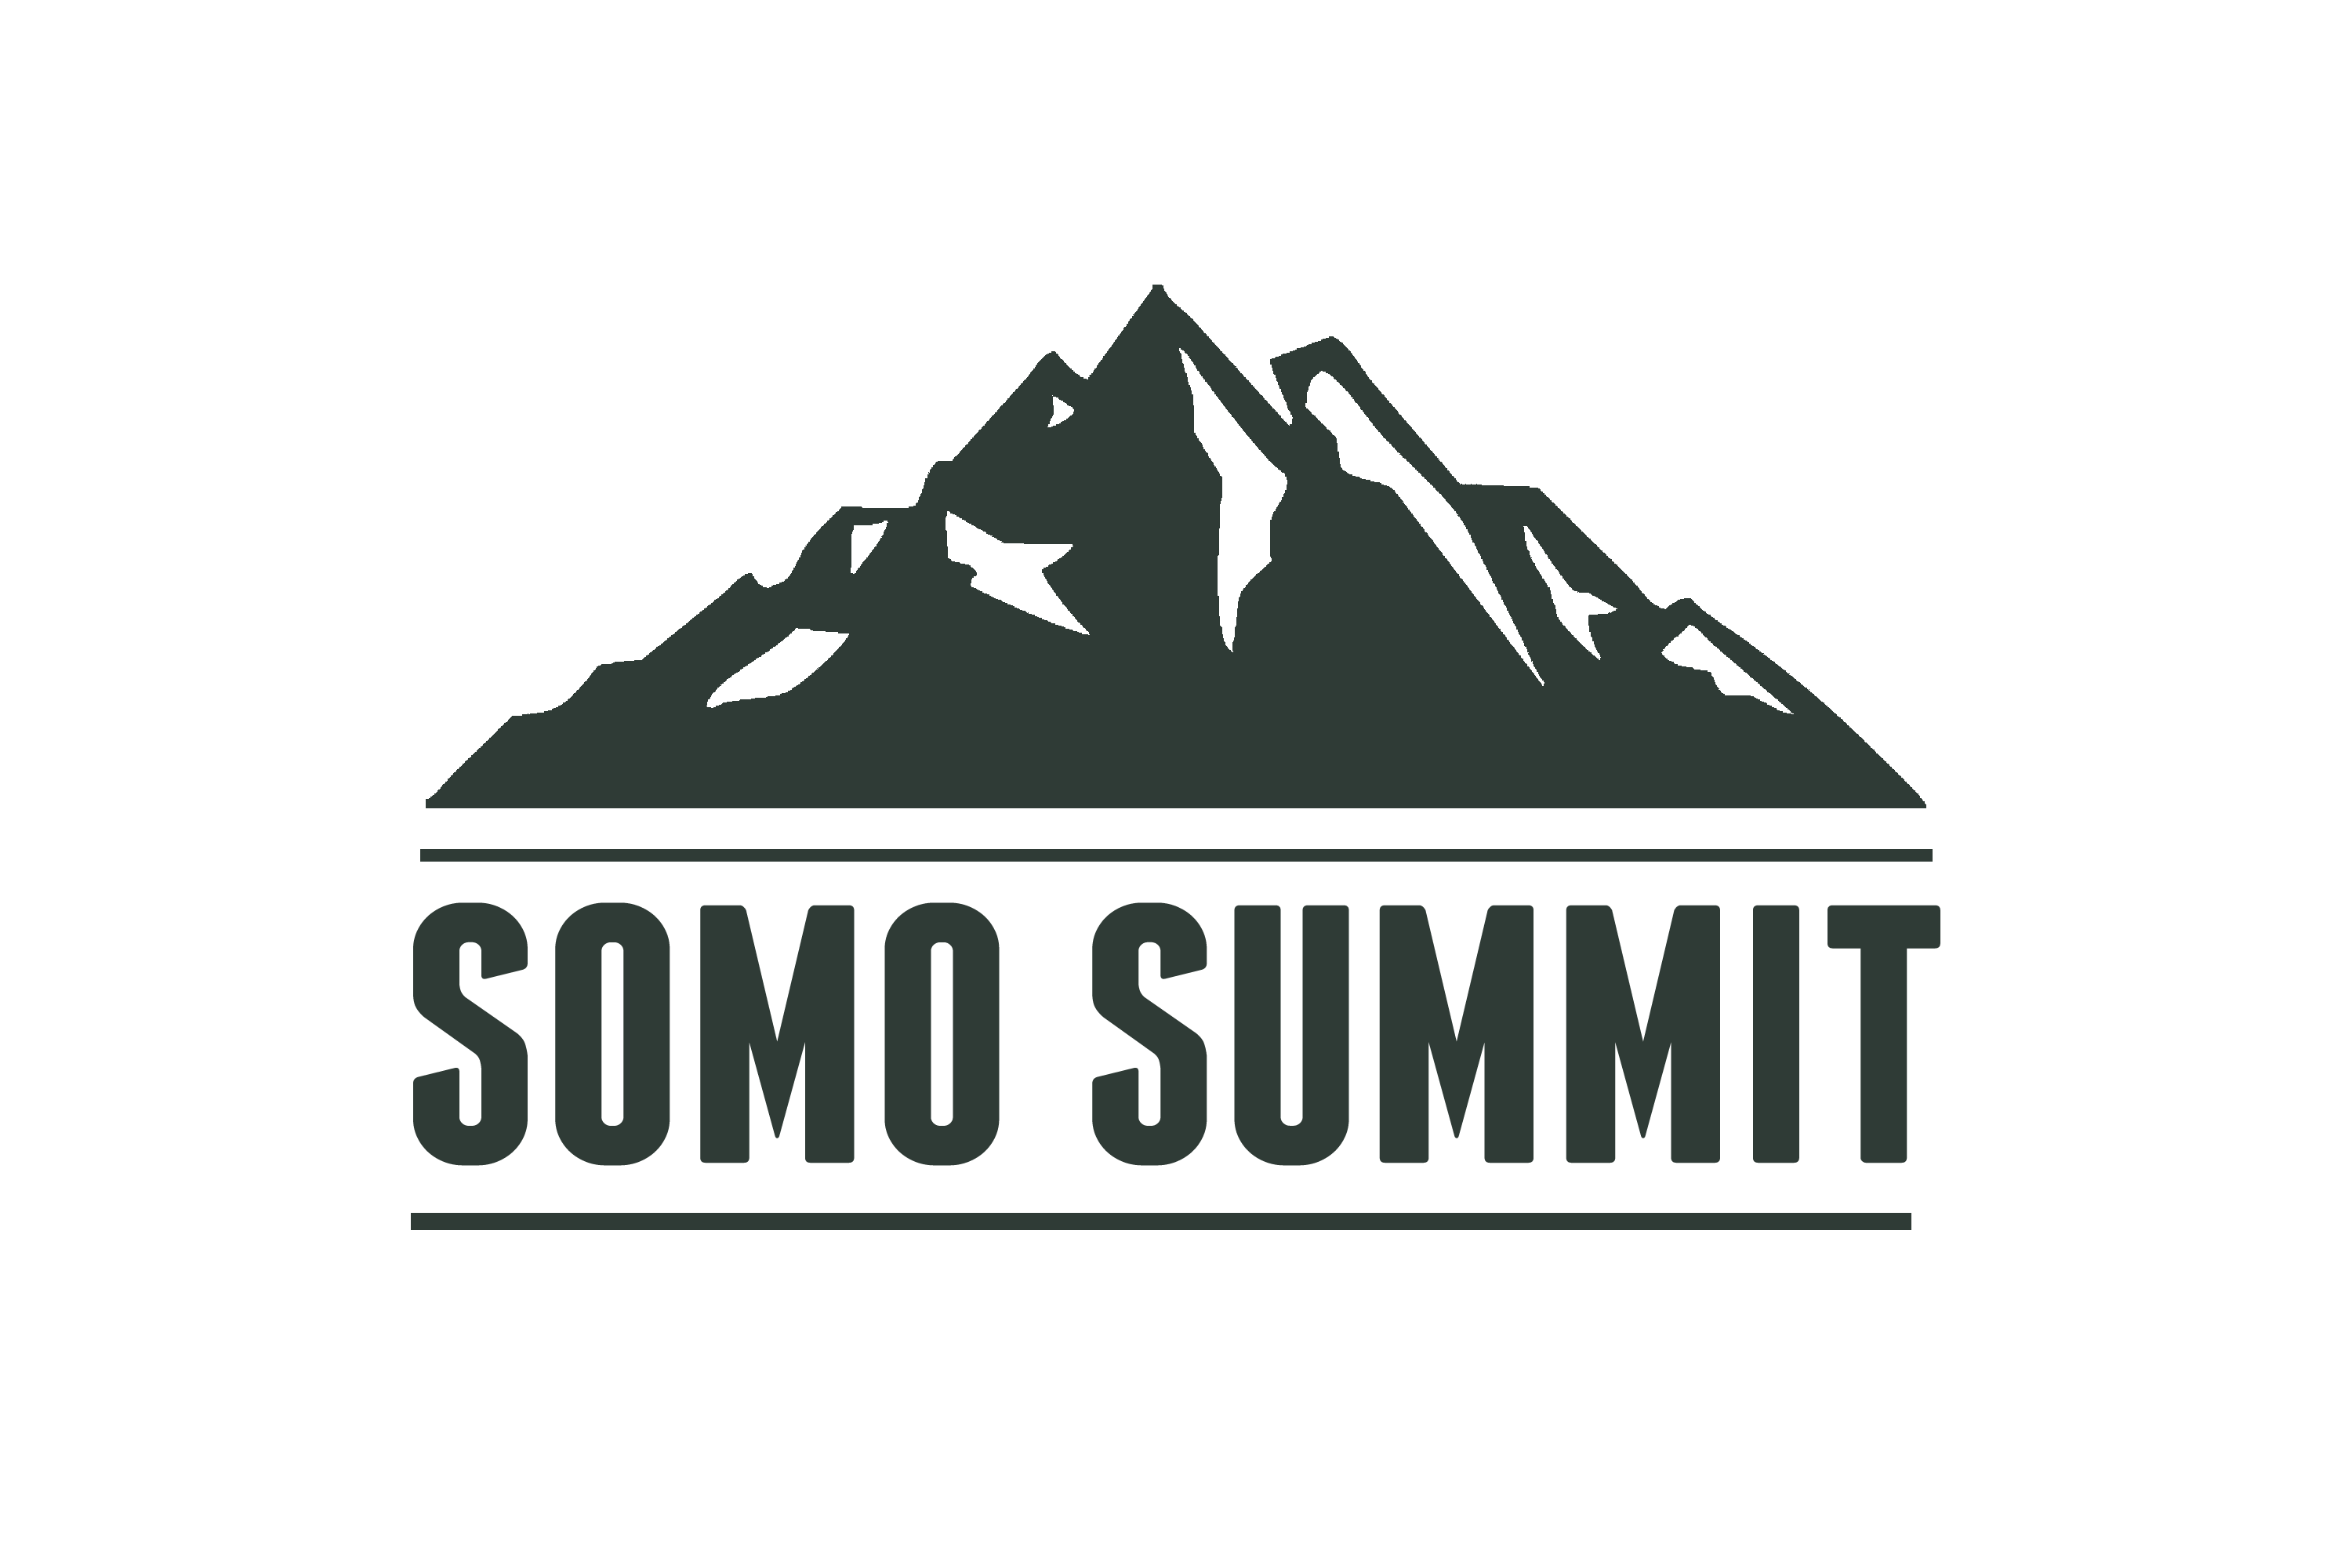 SOMO SUMMIT